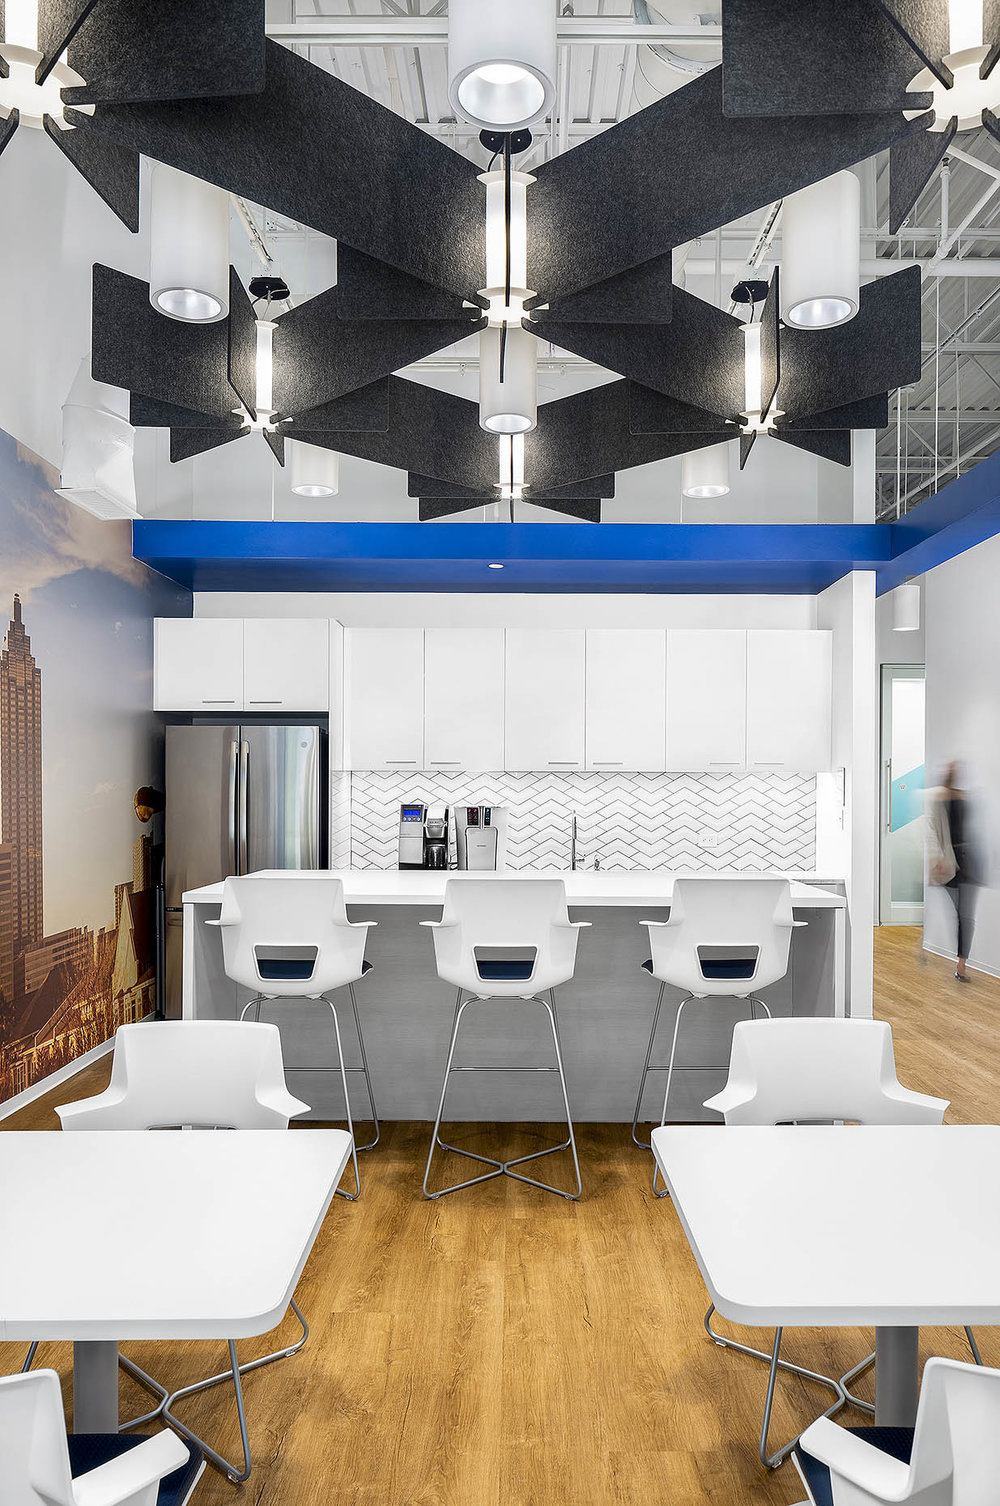 IA_Suntrust_6.3.18_Interior_BreakRoom_01_people1_webuse.jpg